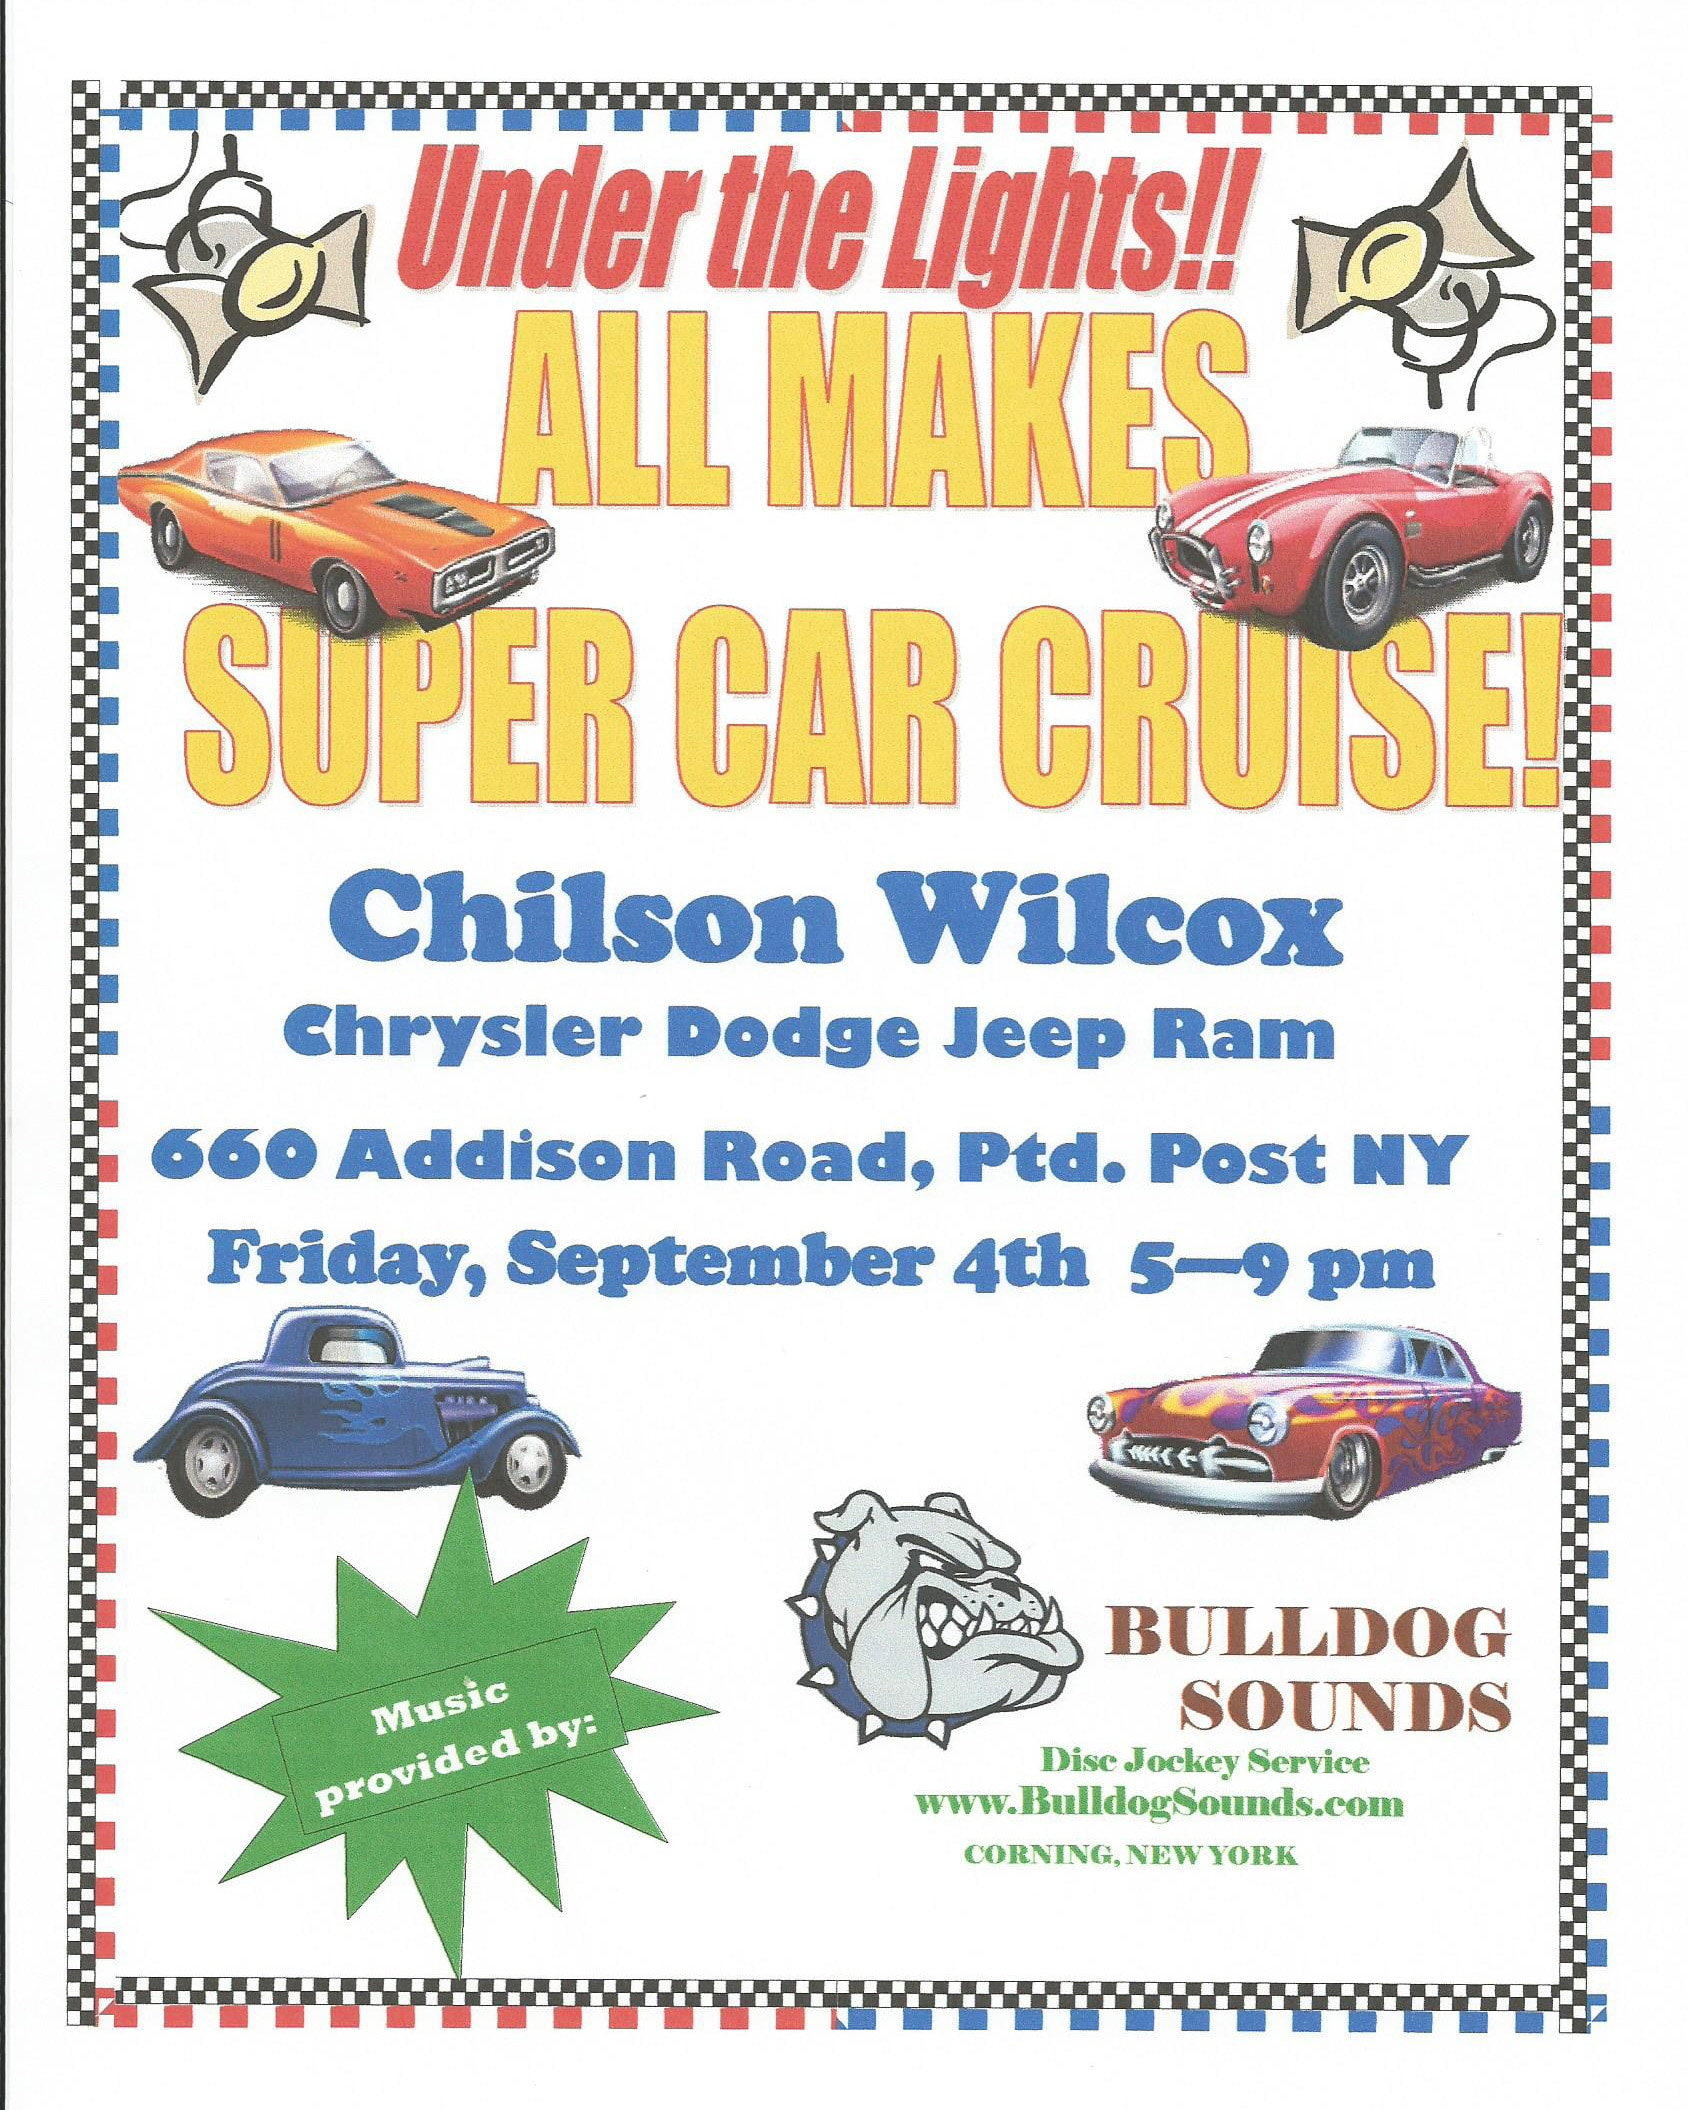 ChilsonWilcox New Chrysler Dodge Jeep Ram Dealership In - Chilson wilcox car show